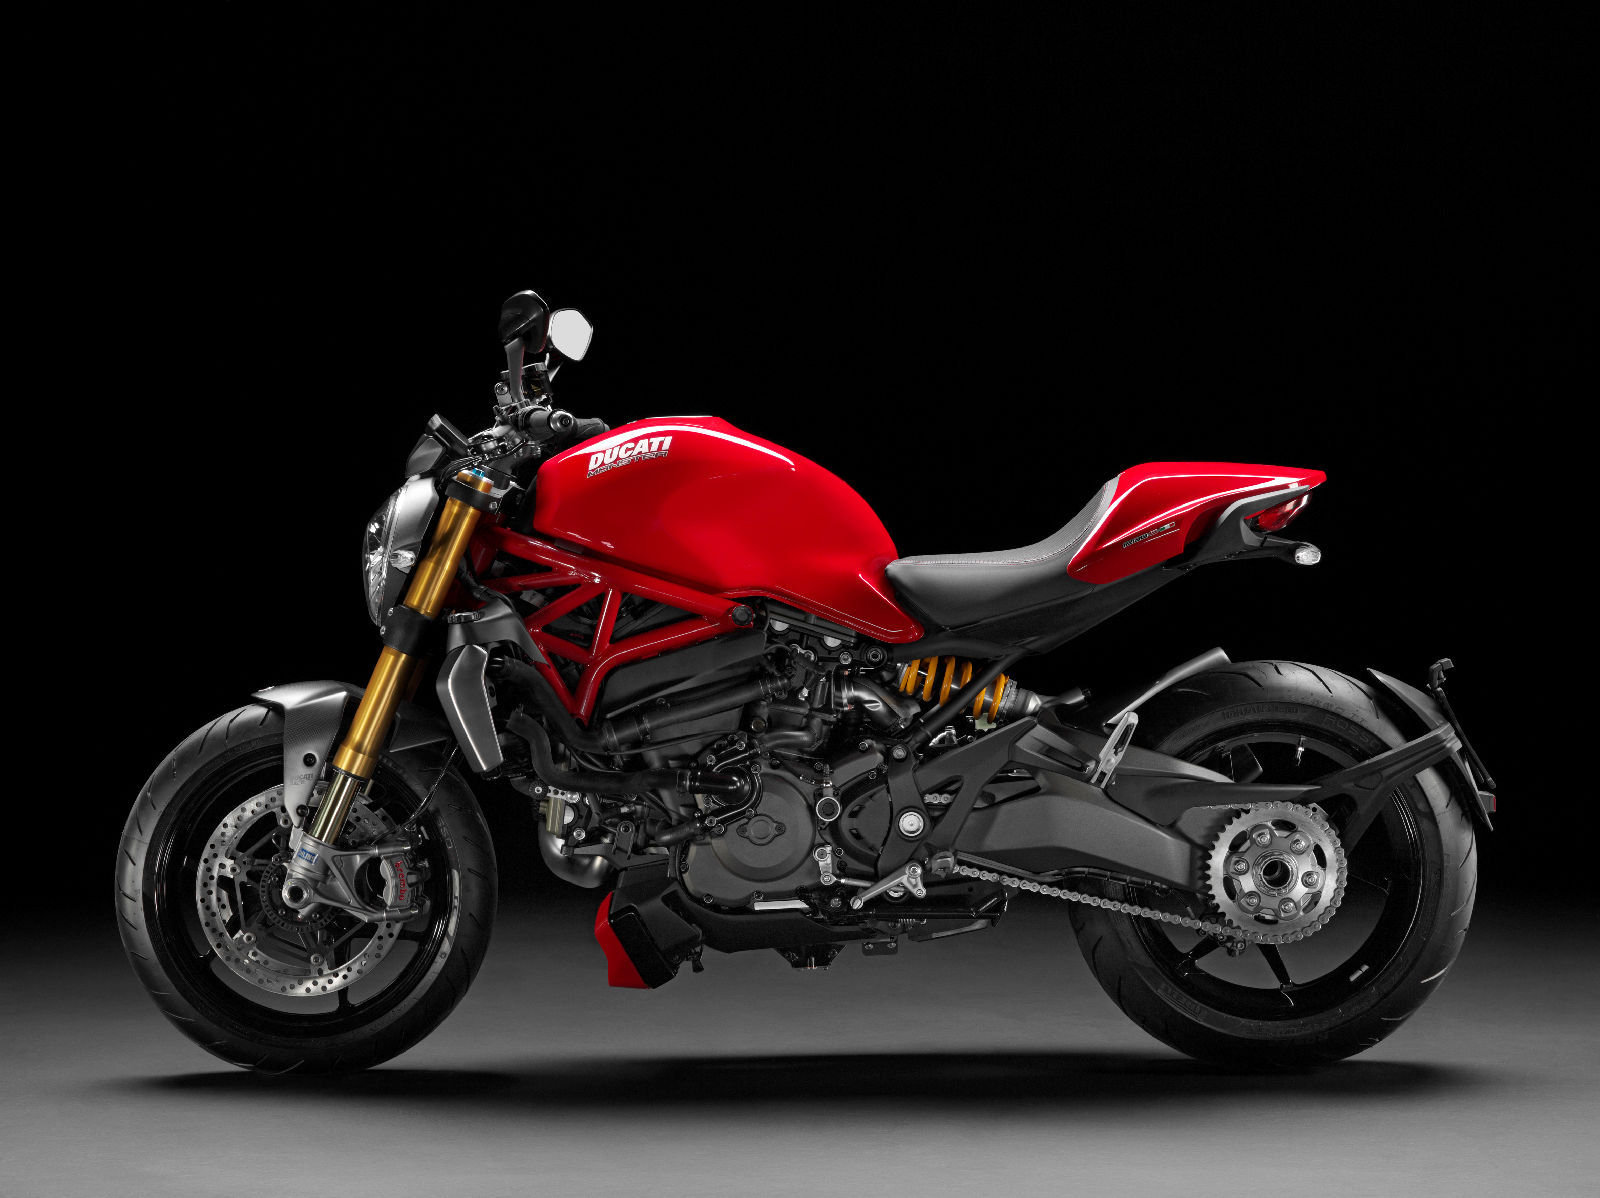 2015 2017 ducati monster 1200 1200 s 1200 r picture 674913 motorcycle review top speed. Black Bedroom Furniture Sets. Home Design Ideas